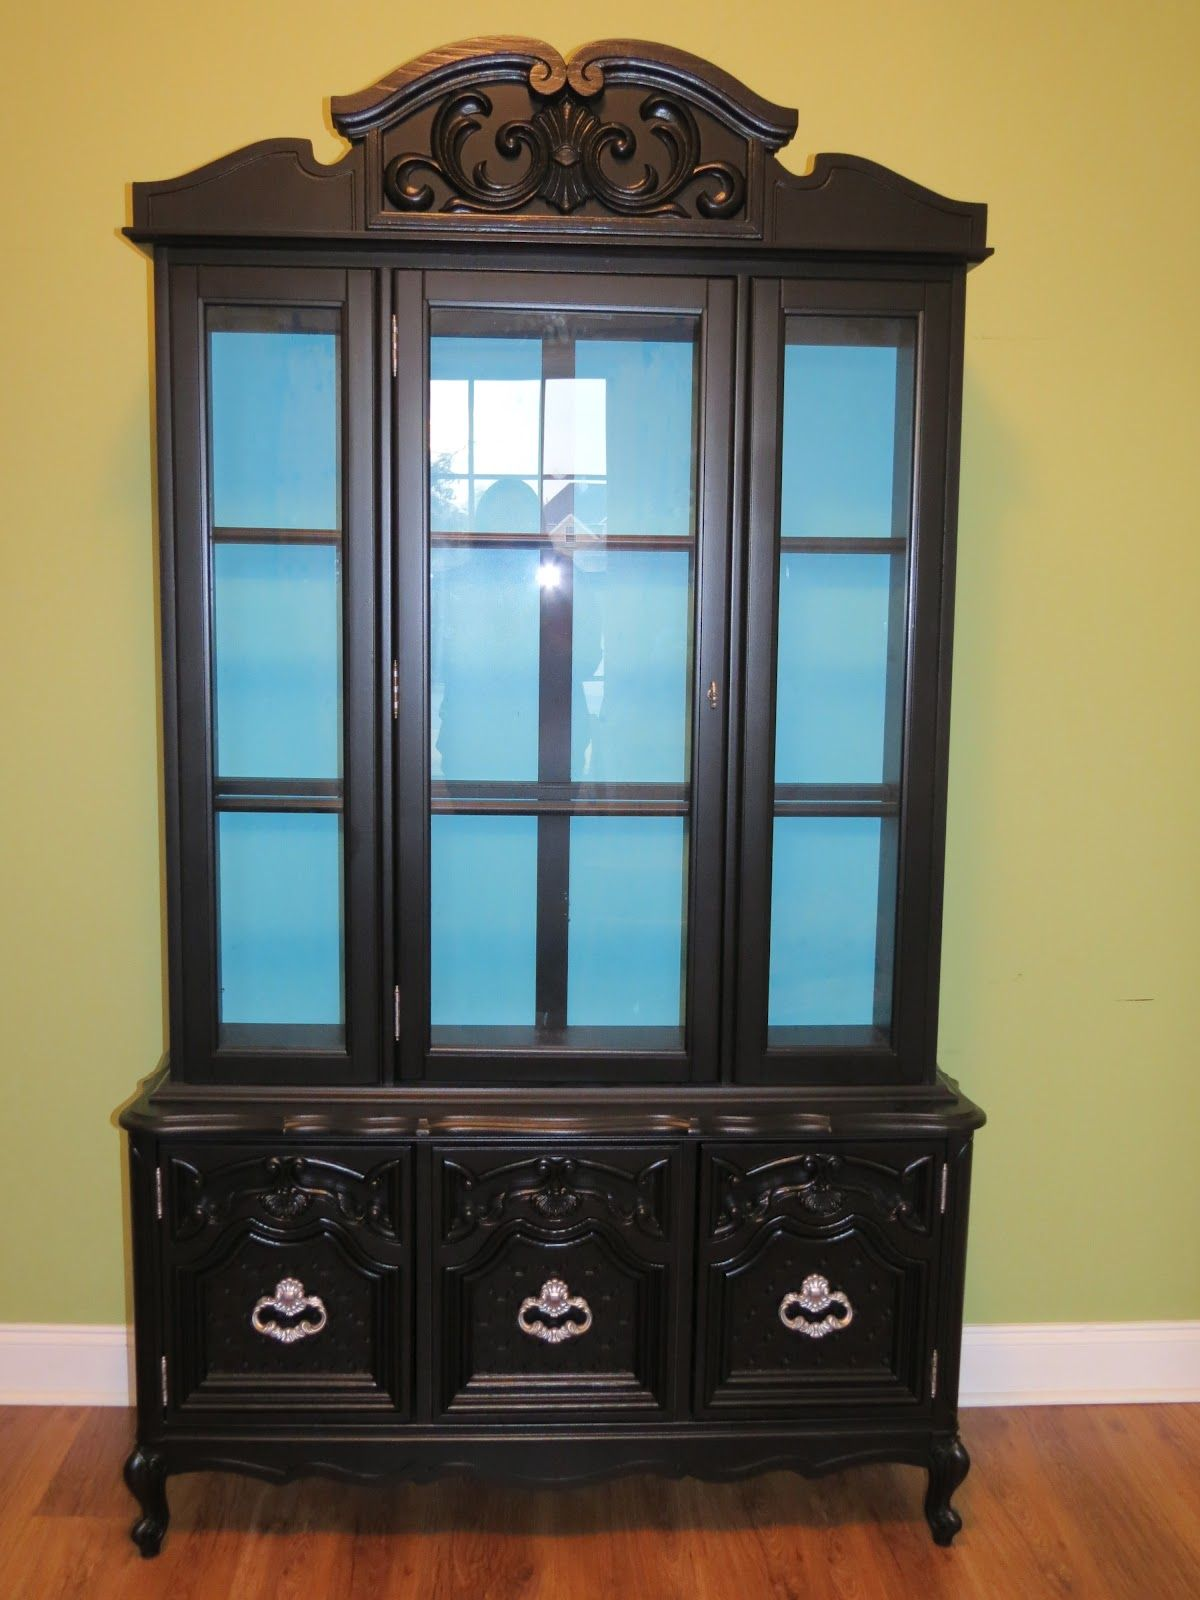 Inspiring Antique Interior Storage Ideas With Exciting China Cabinets:  Elegant Dark China Cabinets With Exciting